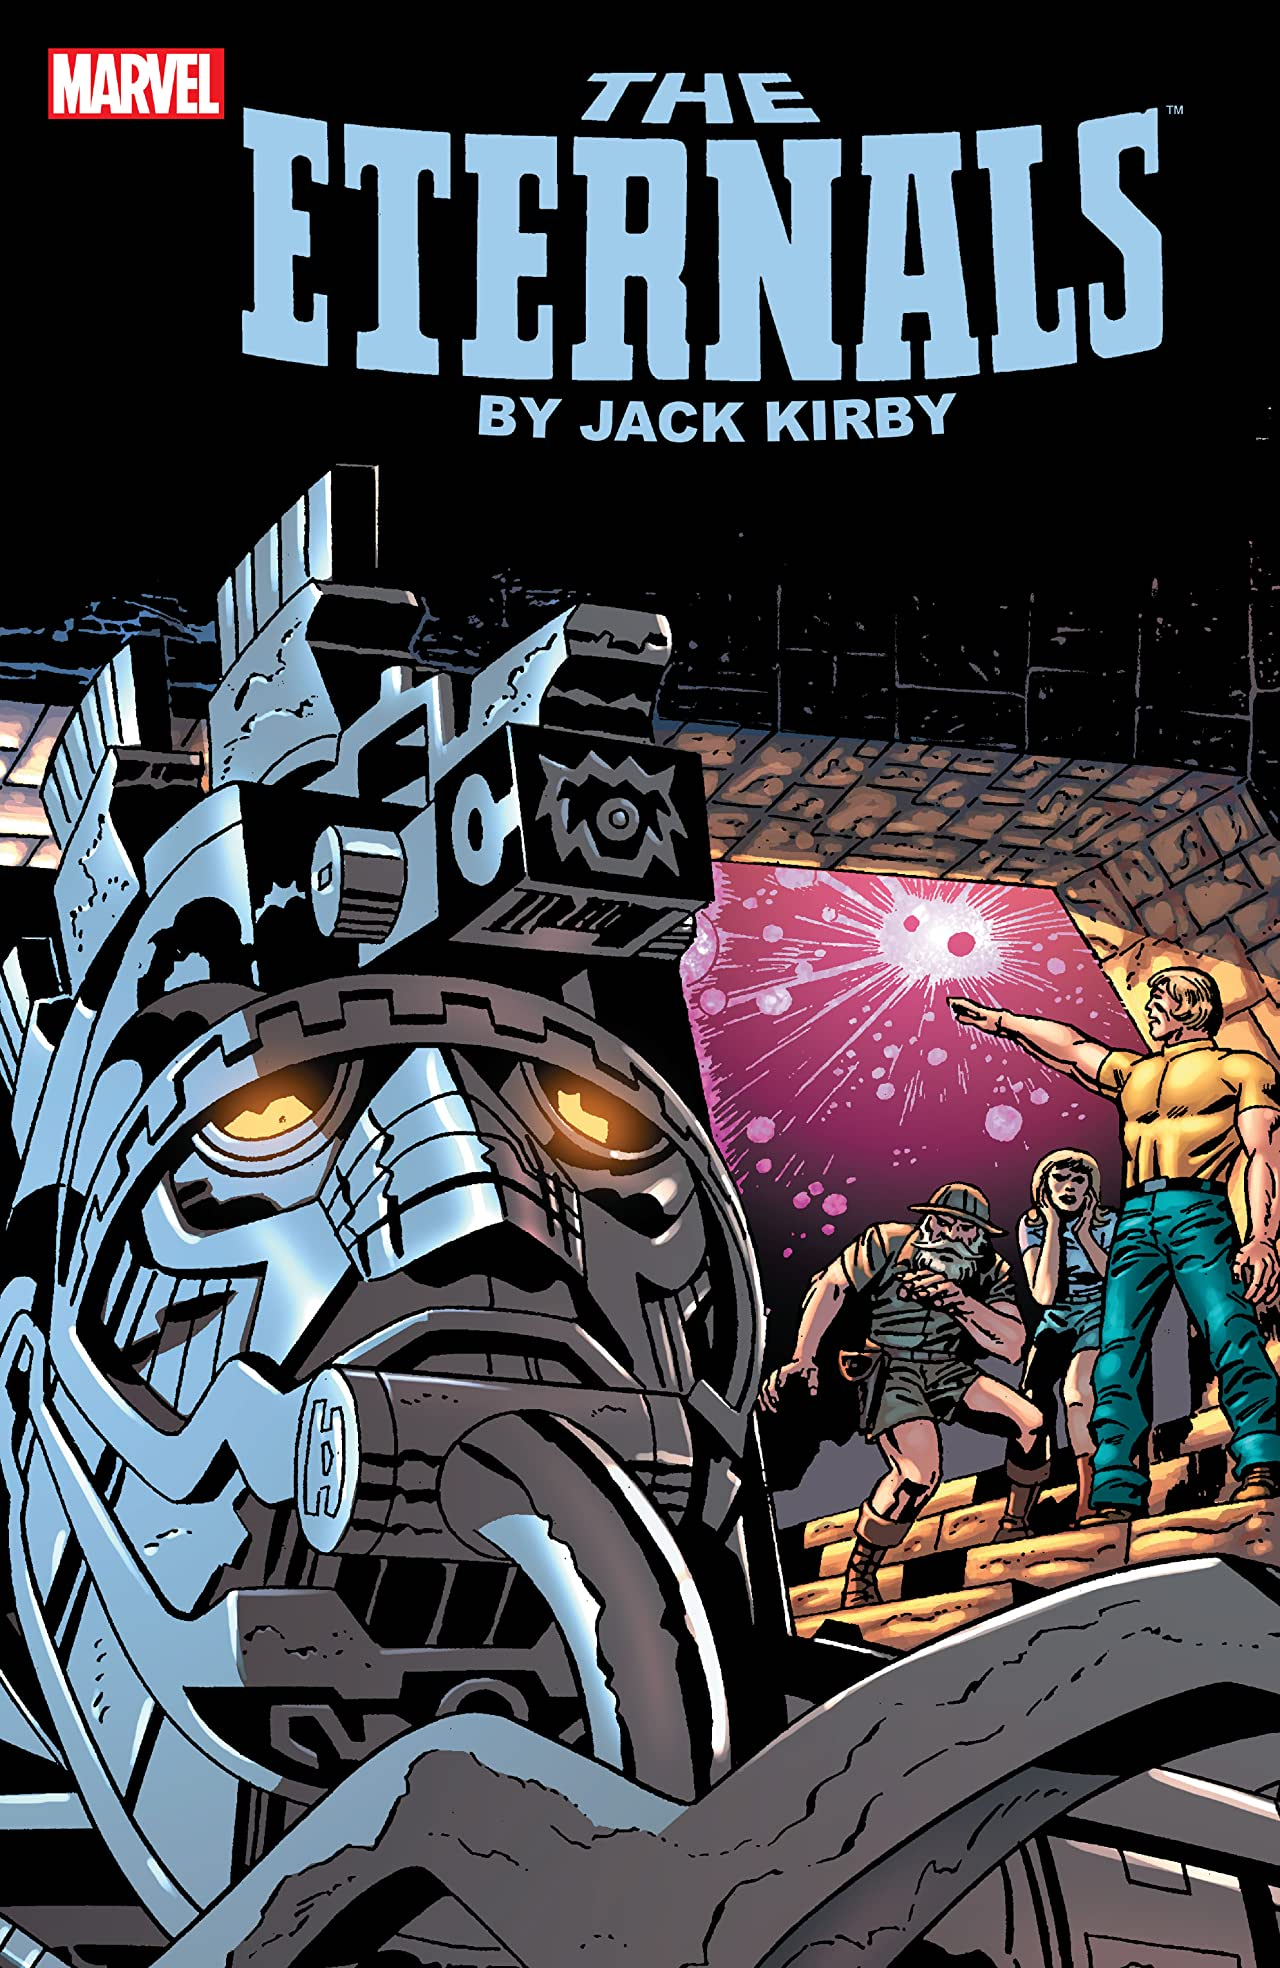 Eternals by Jack Kirby Vol. 1